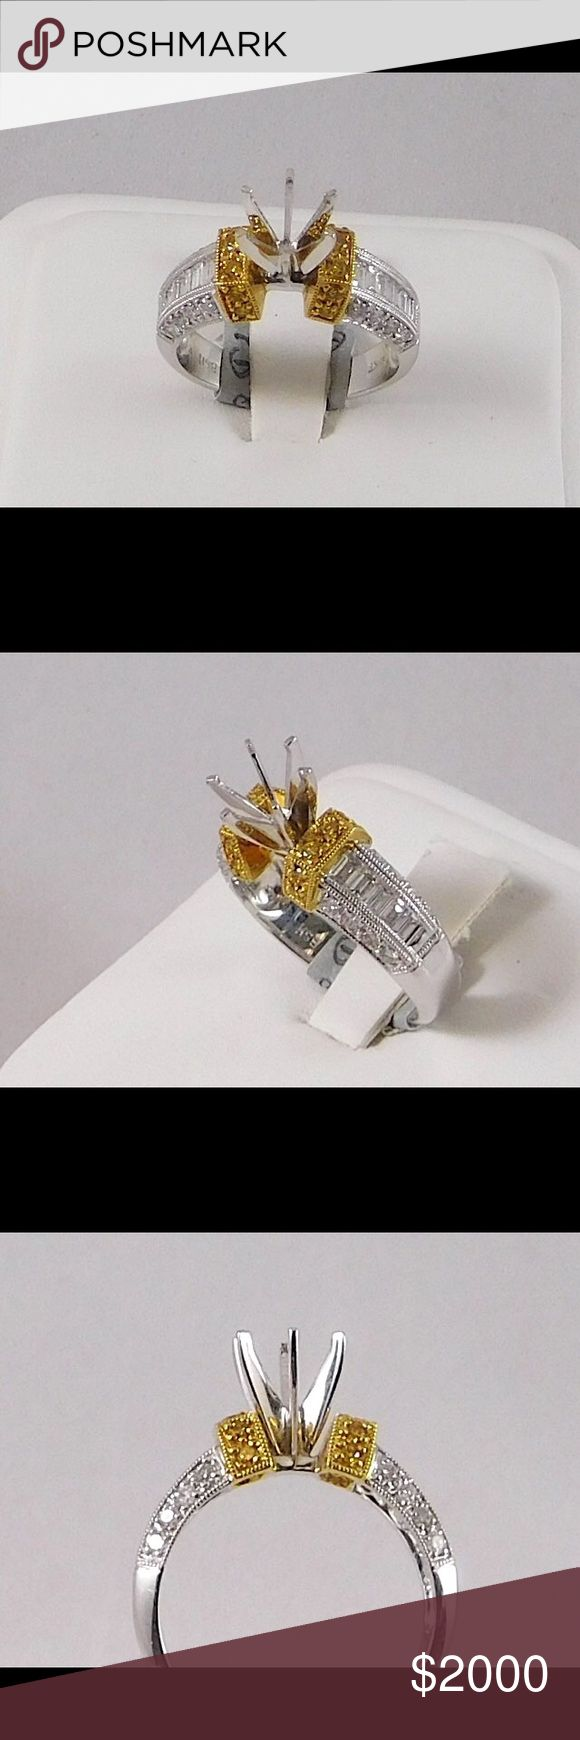 18k Engagement Ring Mounting, white&yellow diamond Beautiful engagement ring mounting. Two tone of 18 karat white and yellow gold. 0.25 carats of a round white diamonds and 0.45 carats of baguette white diamonds and 0.15 carats of a round yellow diamonds. Ready for Centerstone Jewelry Rings